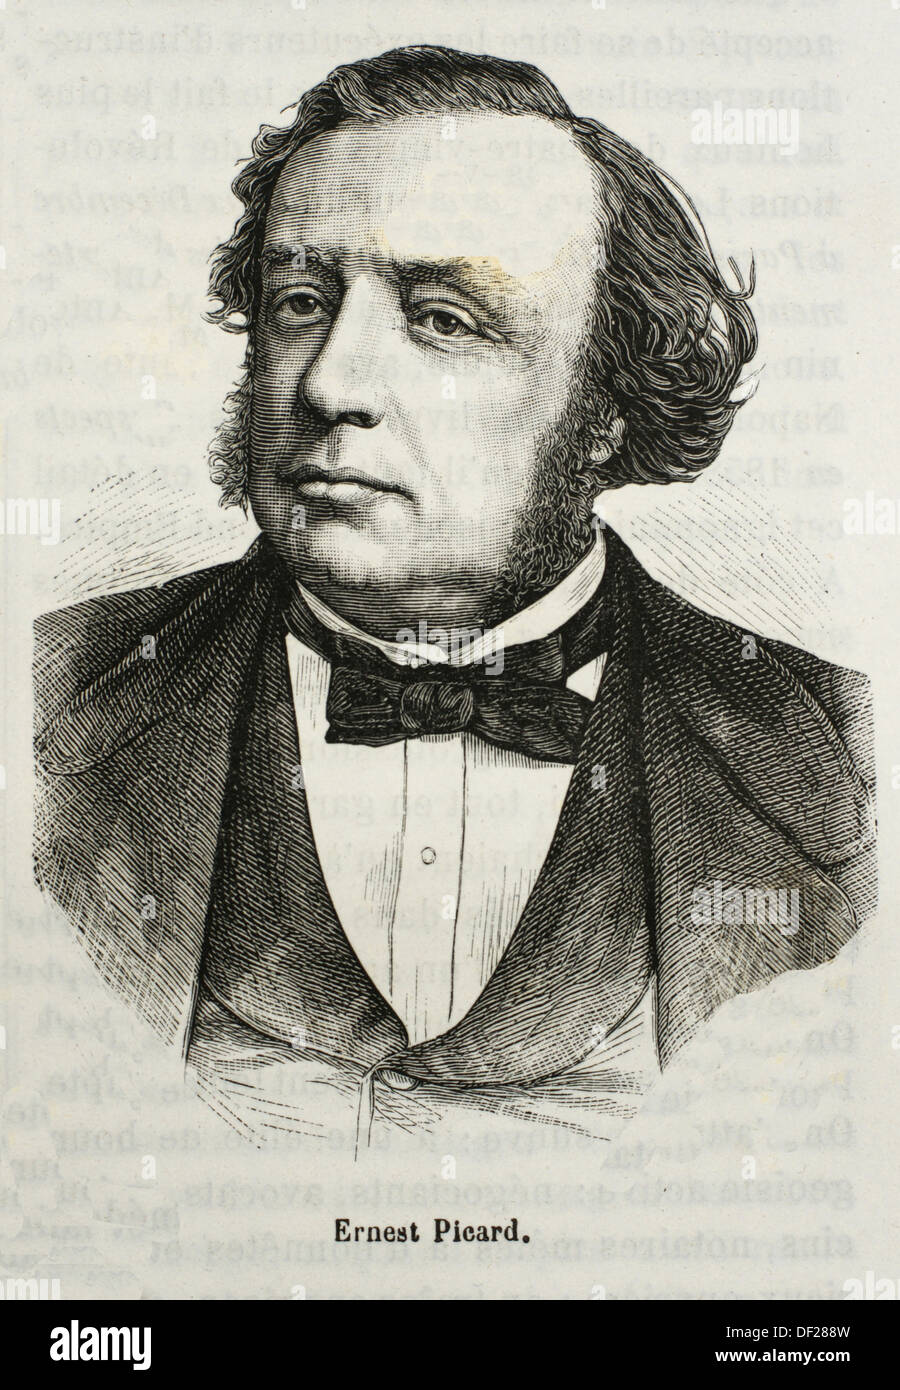 France, History, 19th Century, Louis Joseph Ernest Picard 24 December 1821 - 13 May 1877 was a French politician He was born in - Stock Image